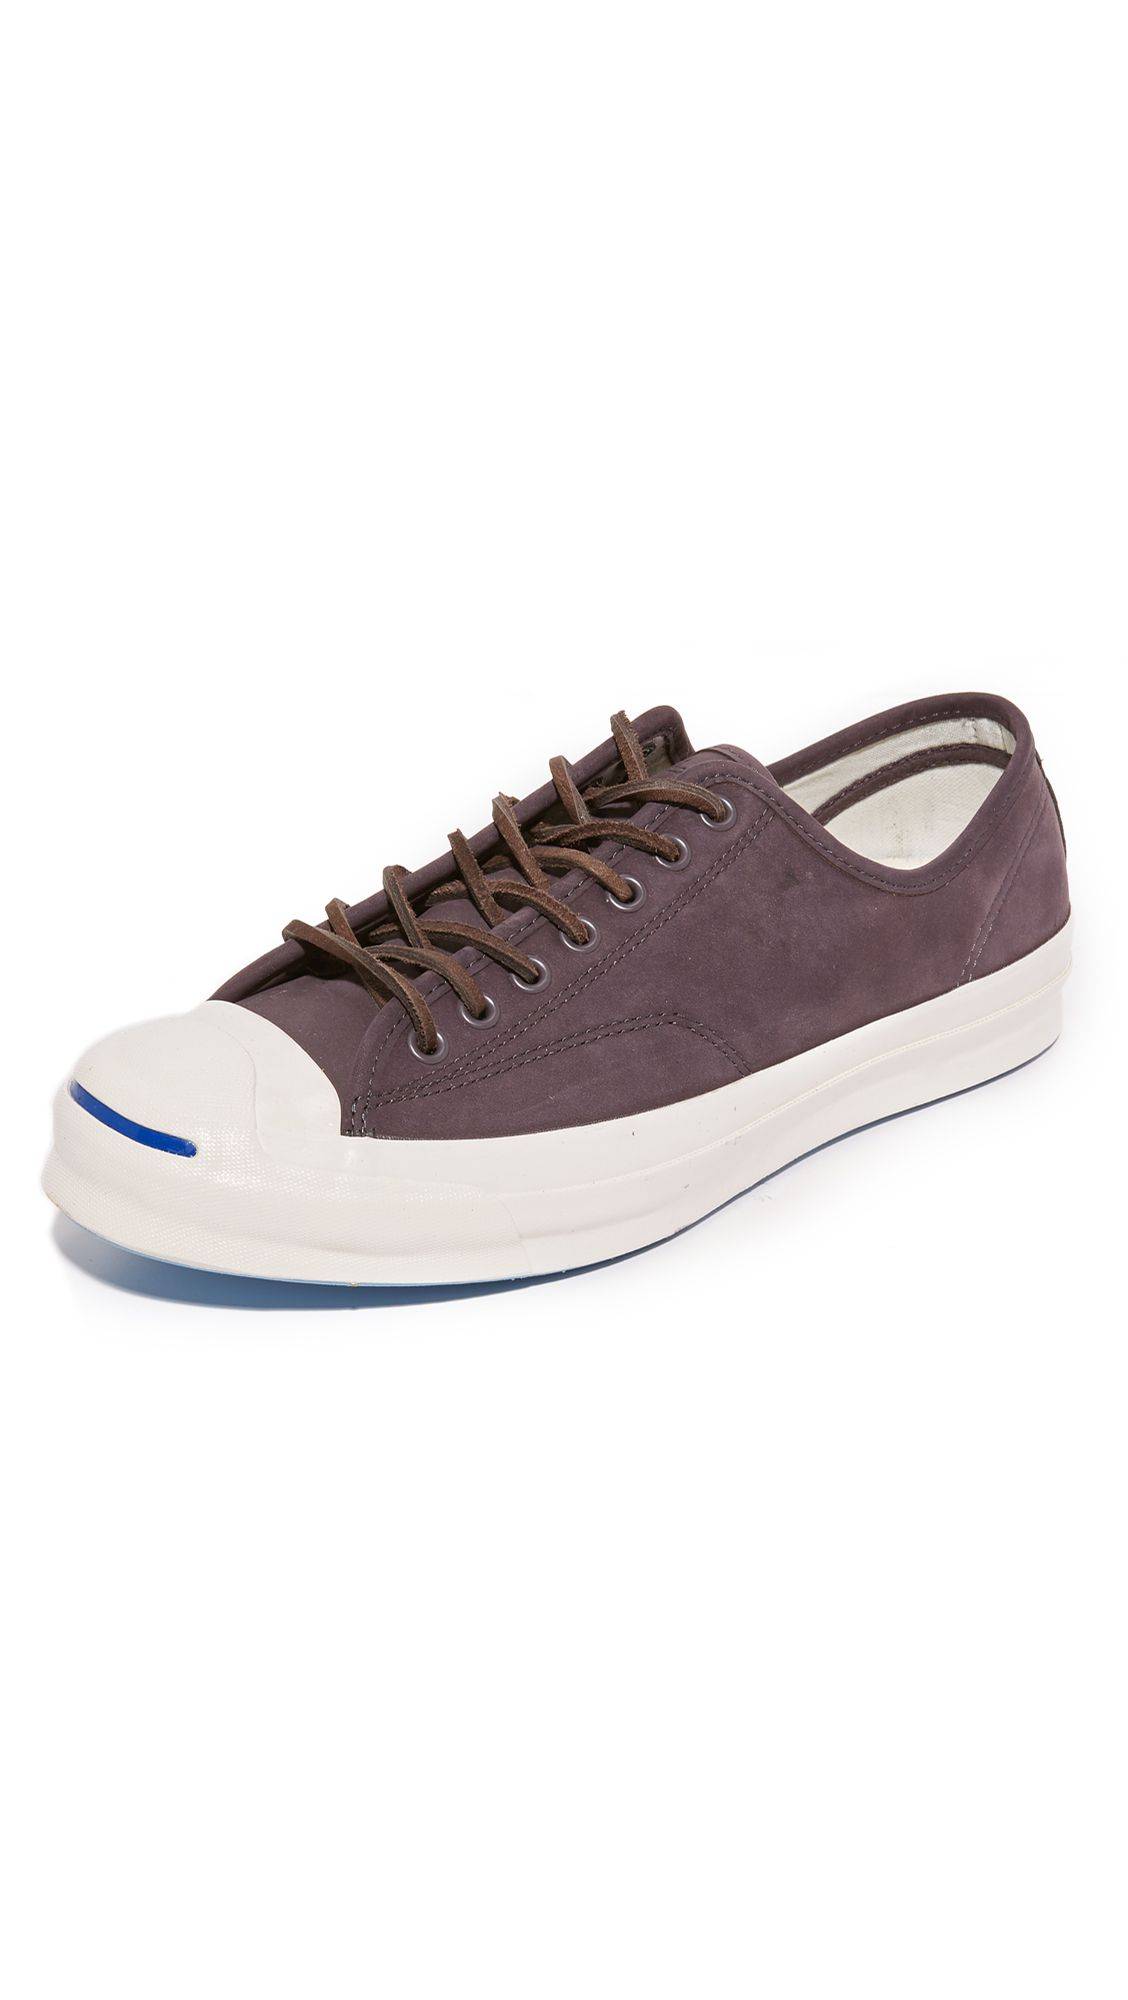 8d4925ccfdd7 CONVERSE Jack Purcell Signature Nubuck Sneakers.  converse  shoes  sneakers